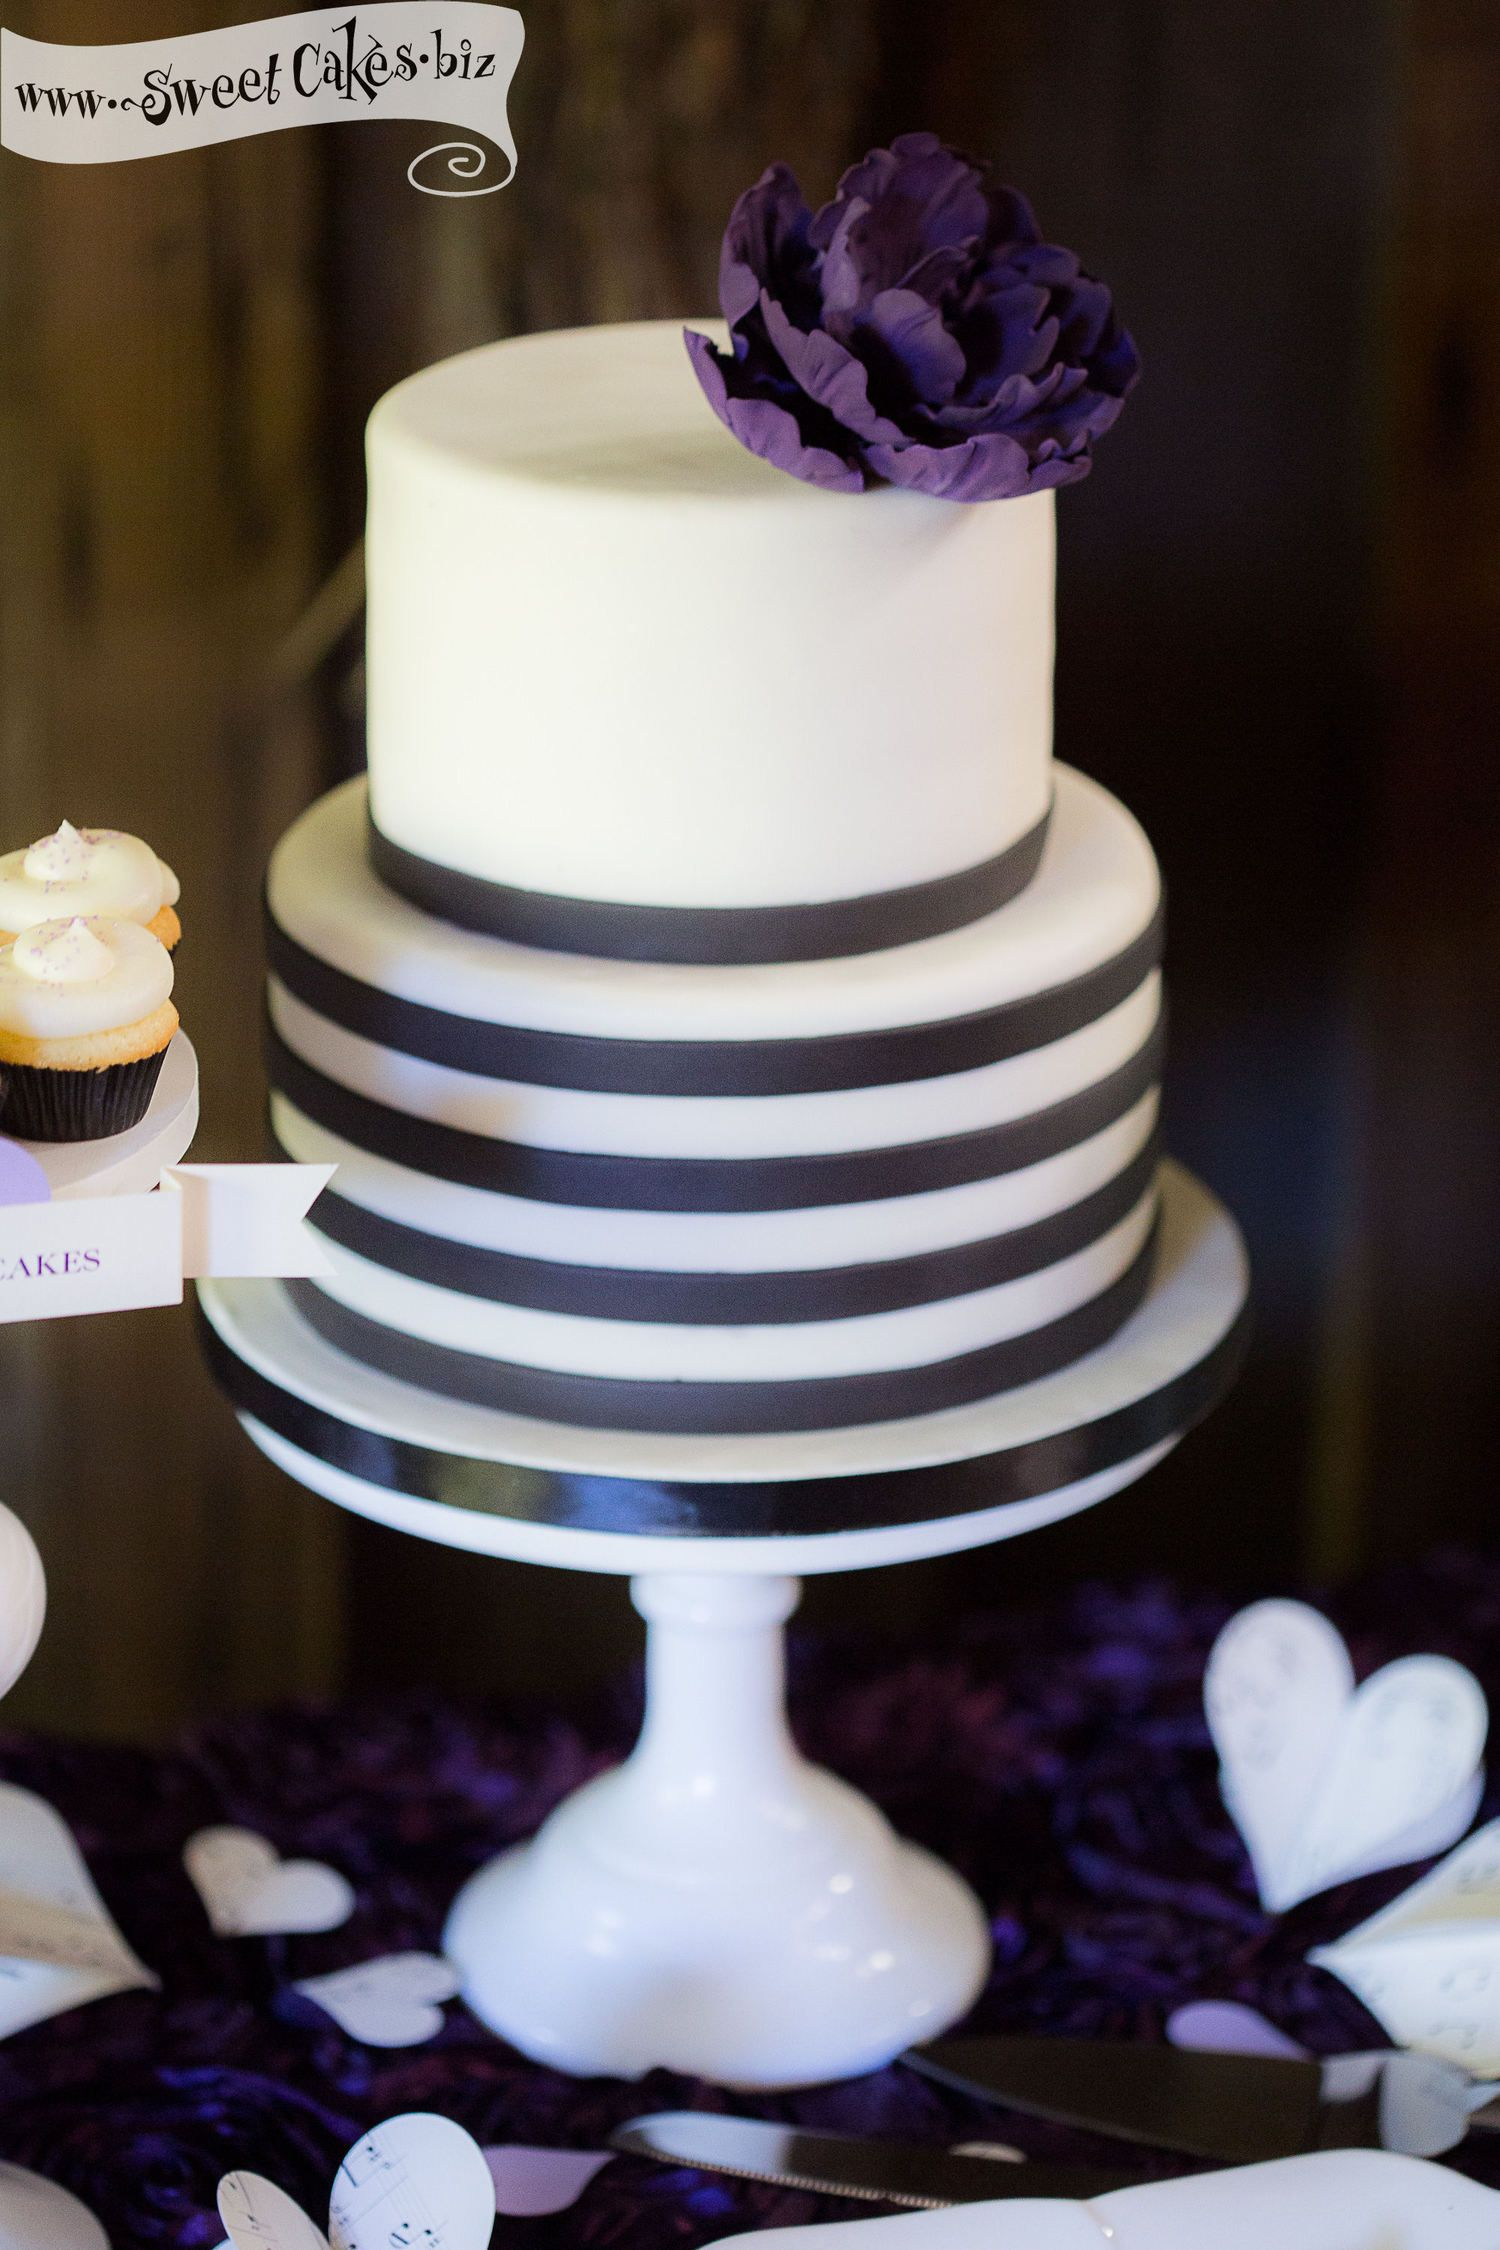 Wedding Cakes — Sweet Cakes by Rebecca